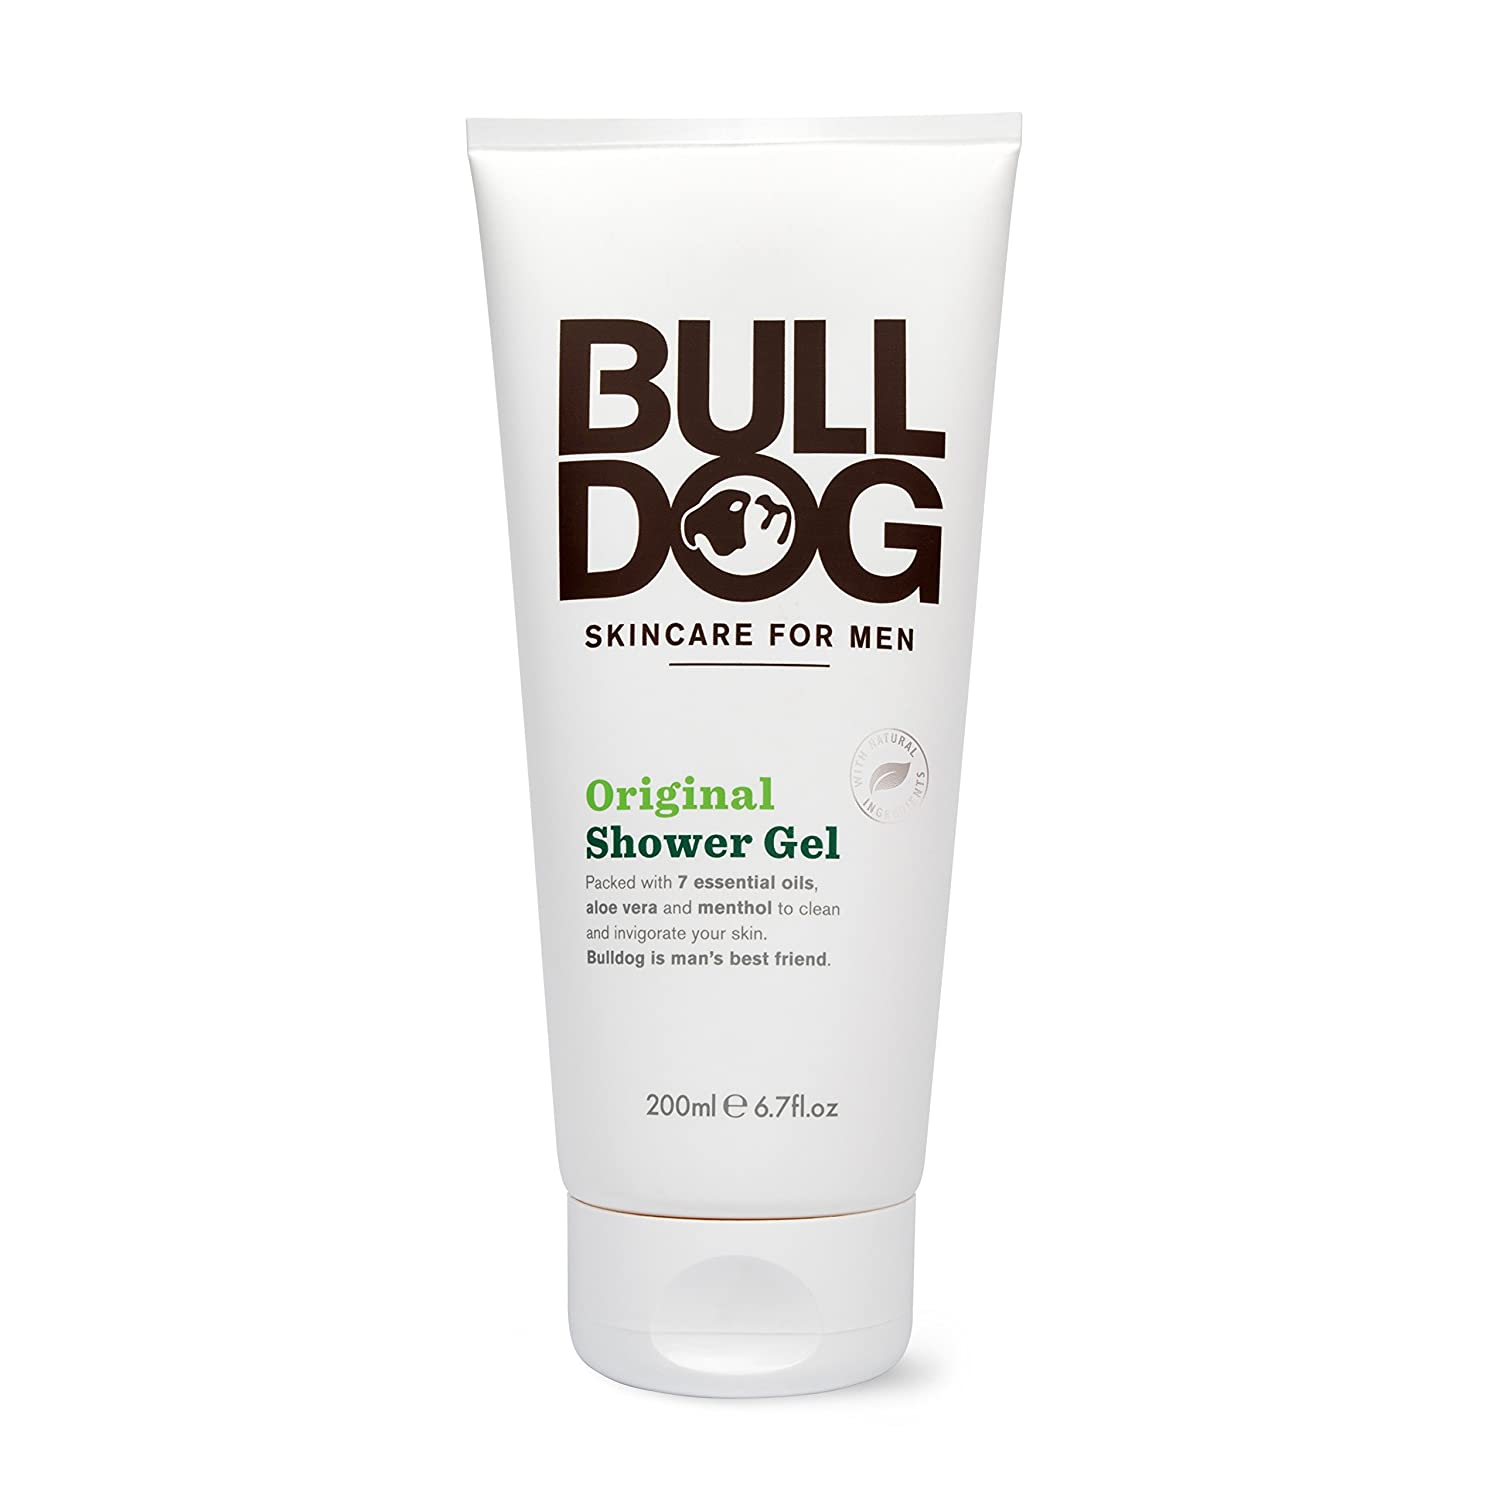 Bulldog Natural Skincare B42513 Bulldog Original Shower Gel200ml -1x6.7oz Healthcenter 63907